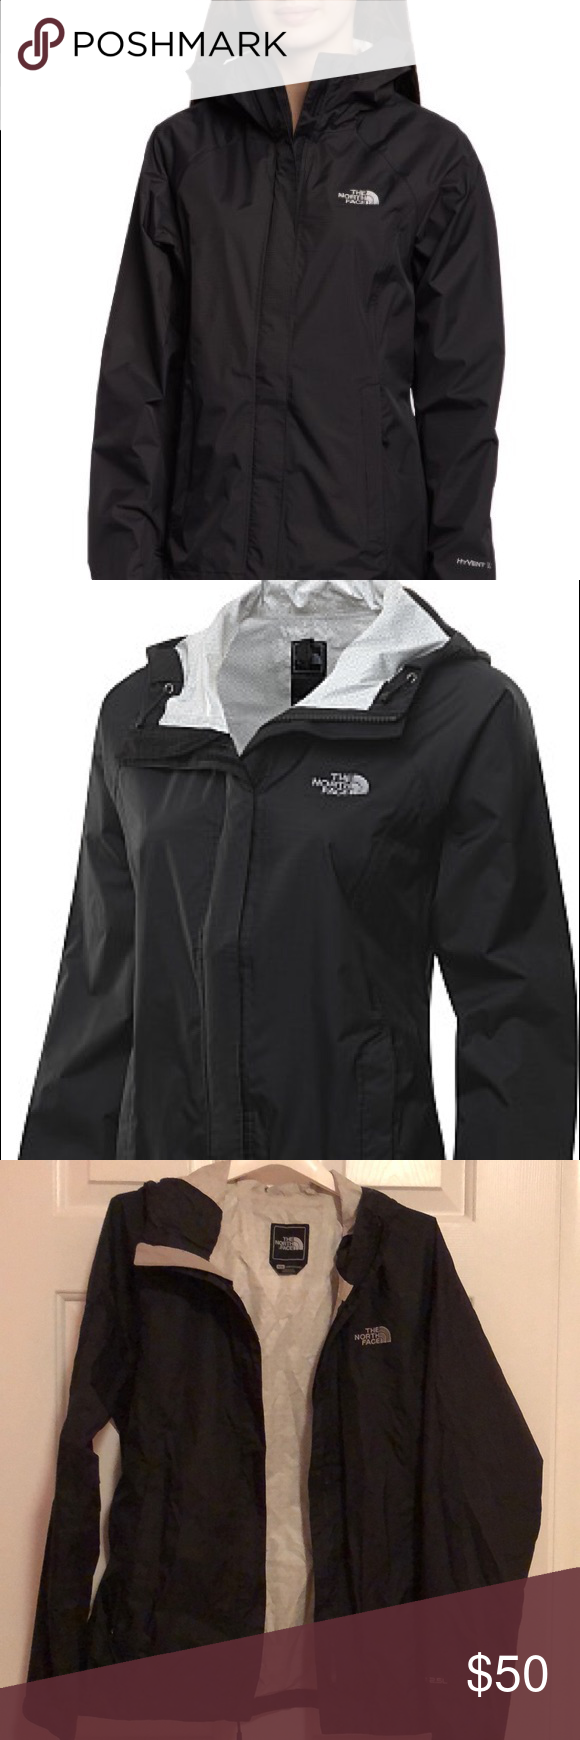 87ce25e75 The North Face Womens Venture Rain Jacket Medium This is a lightly ...